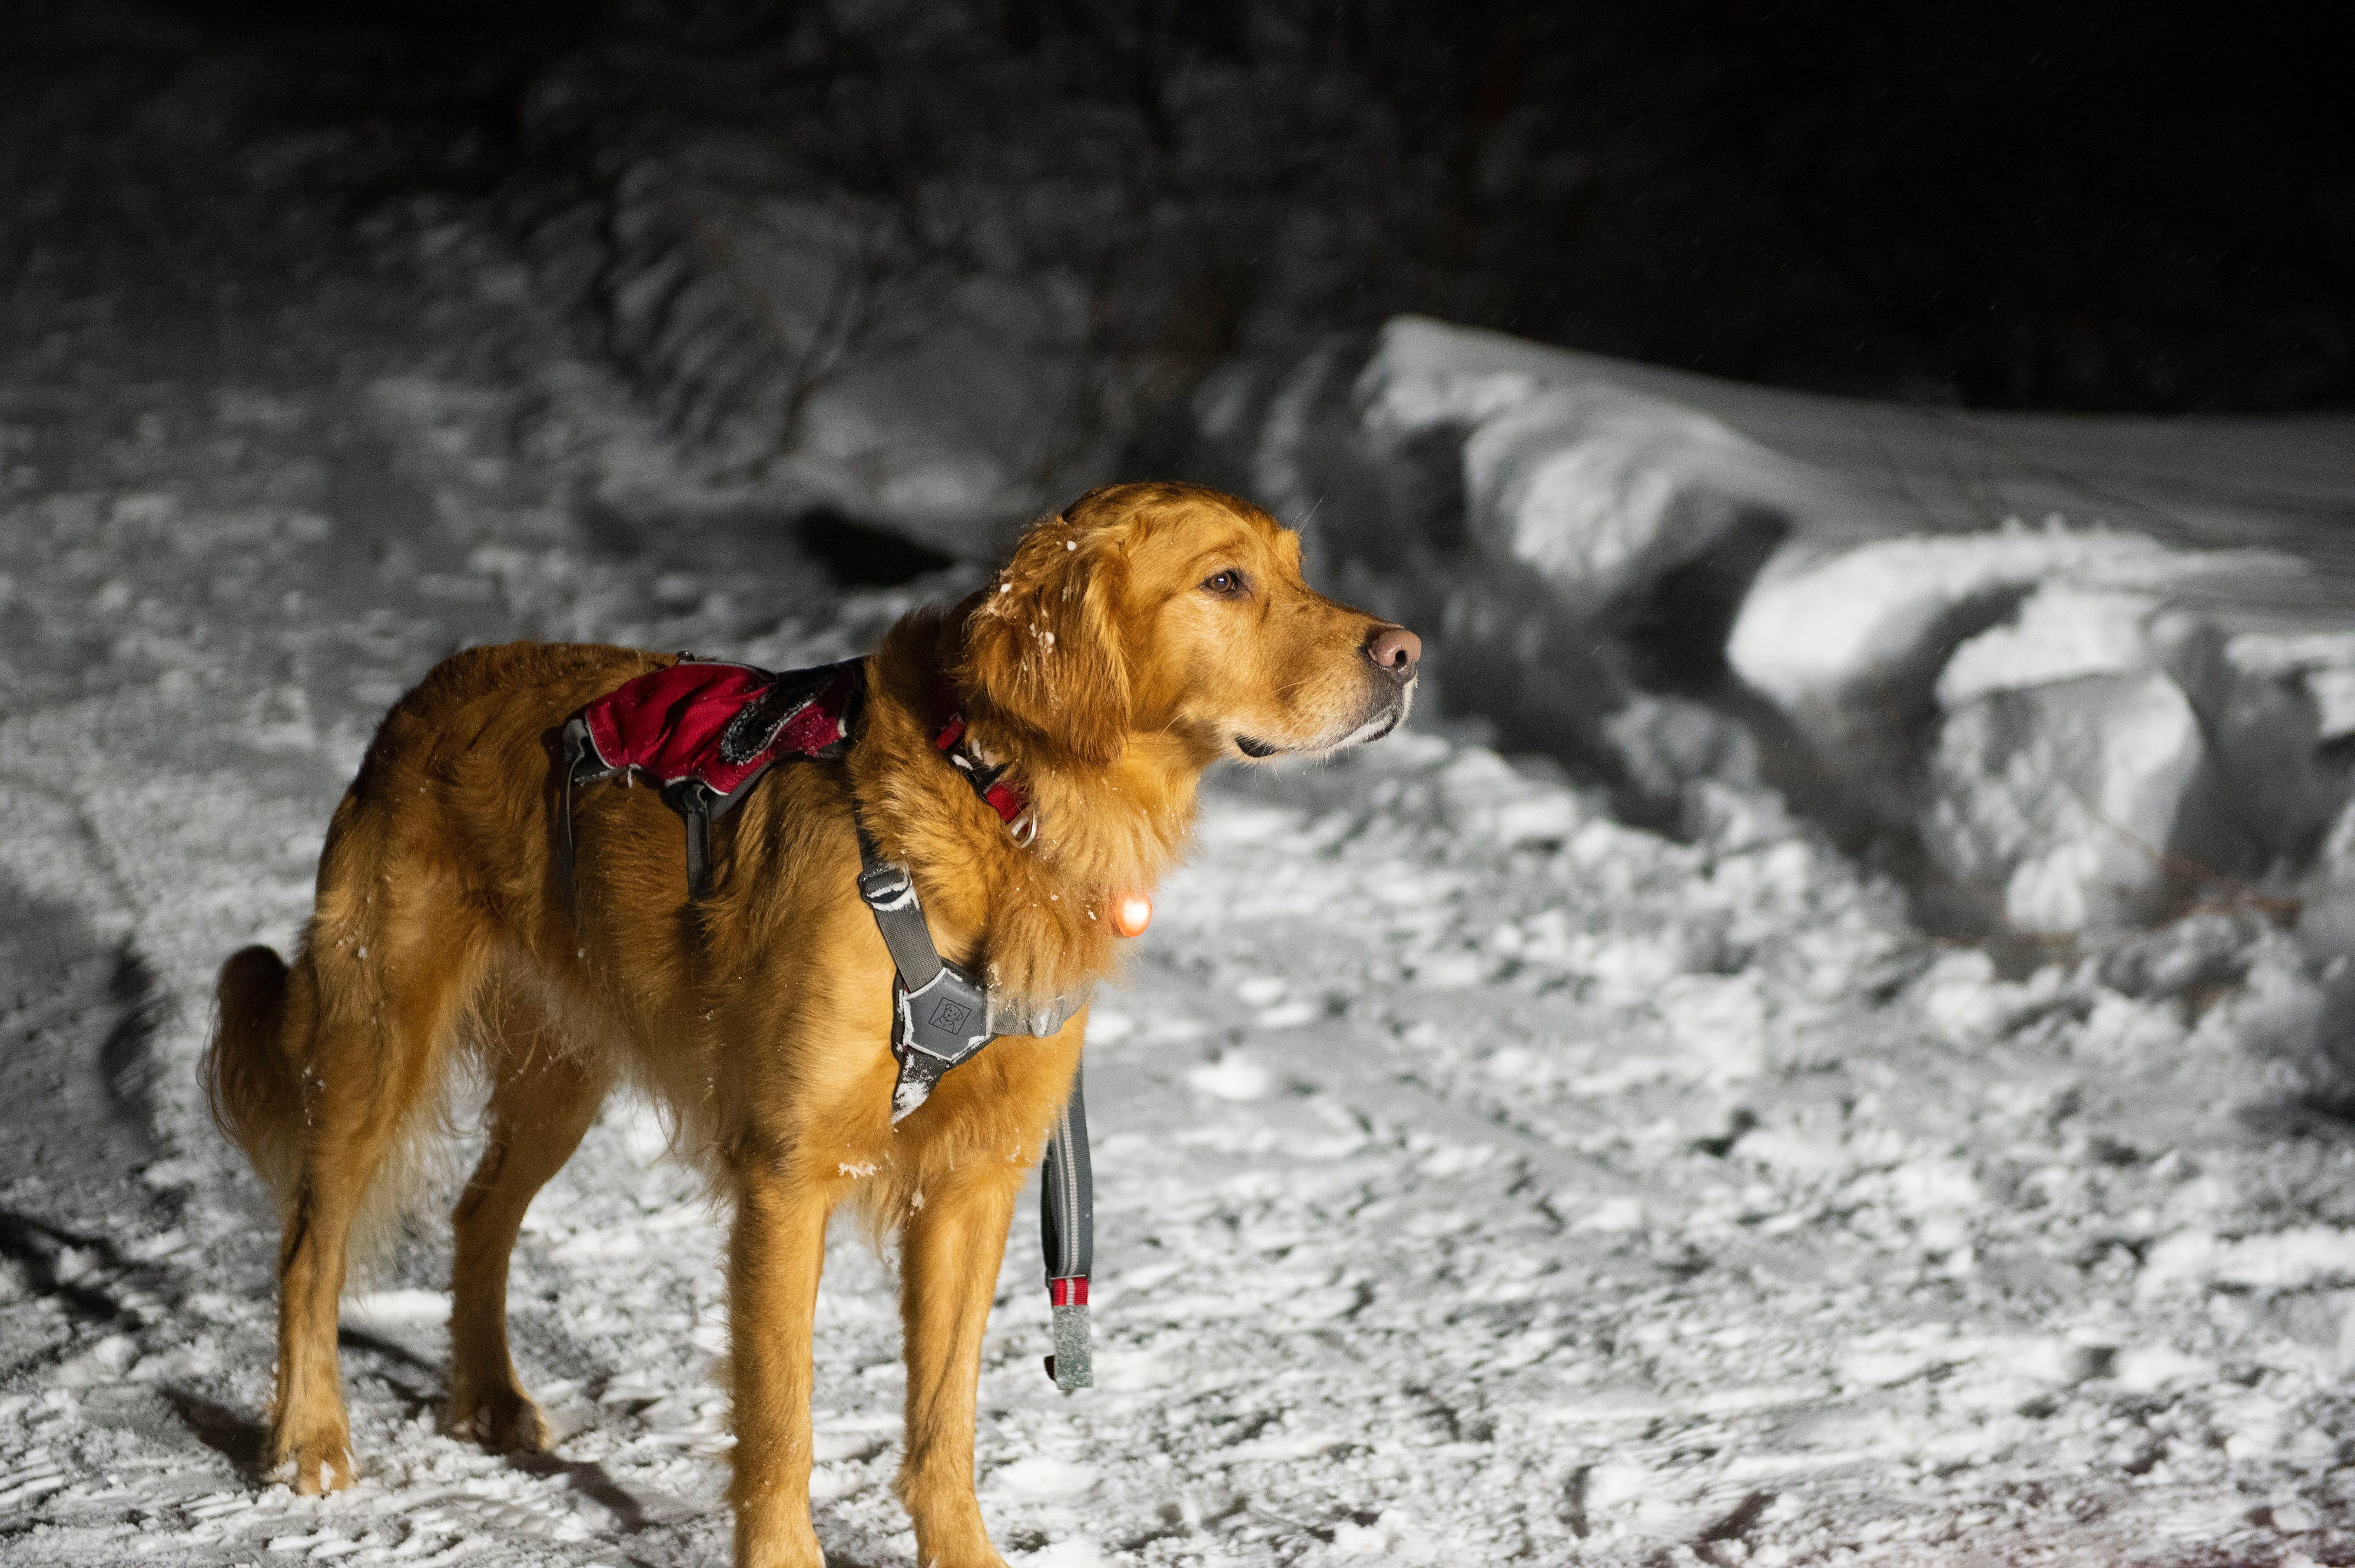 Avalanche rescue dog school in Utah prepares pups to save lives